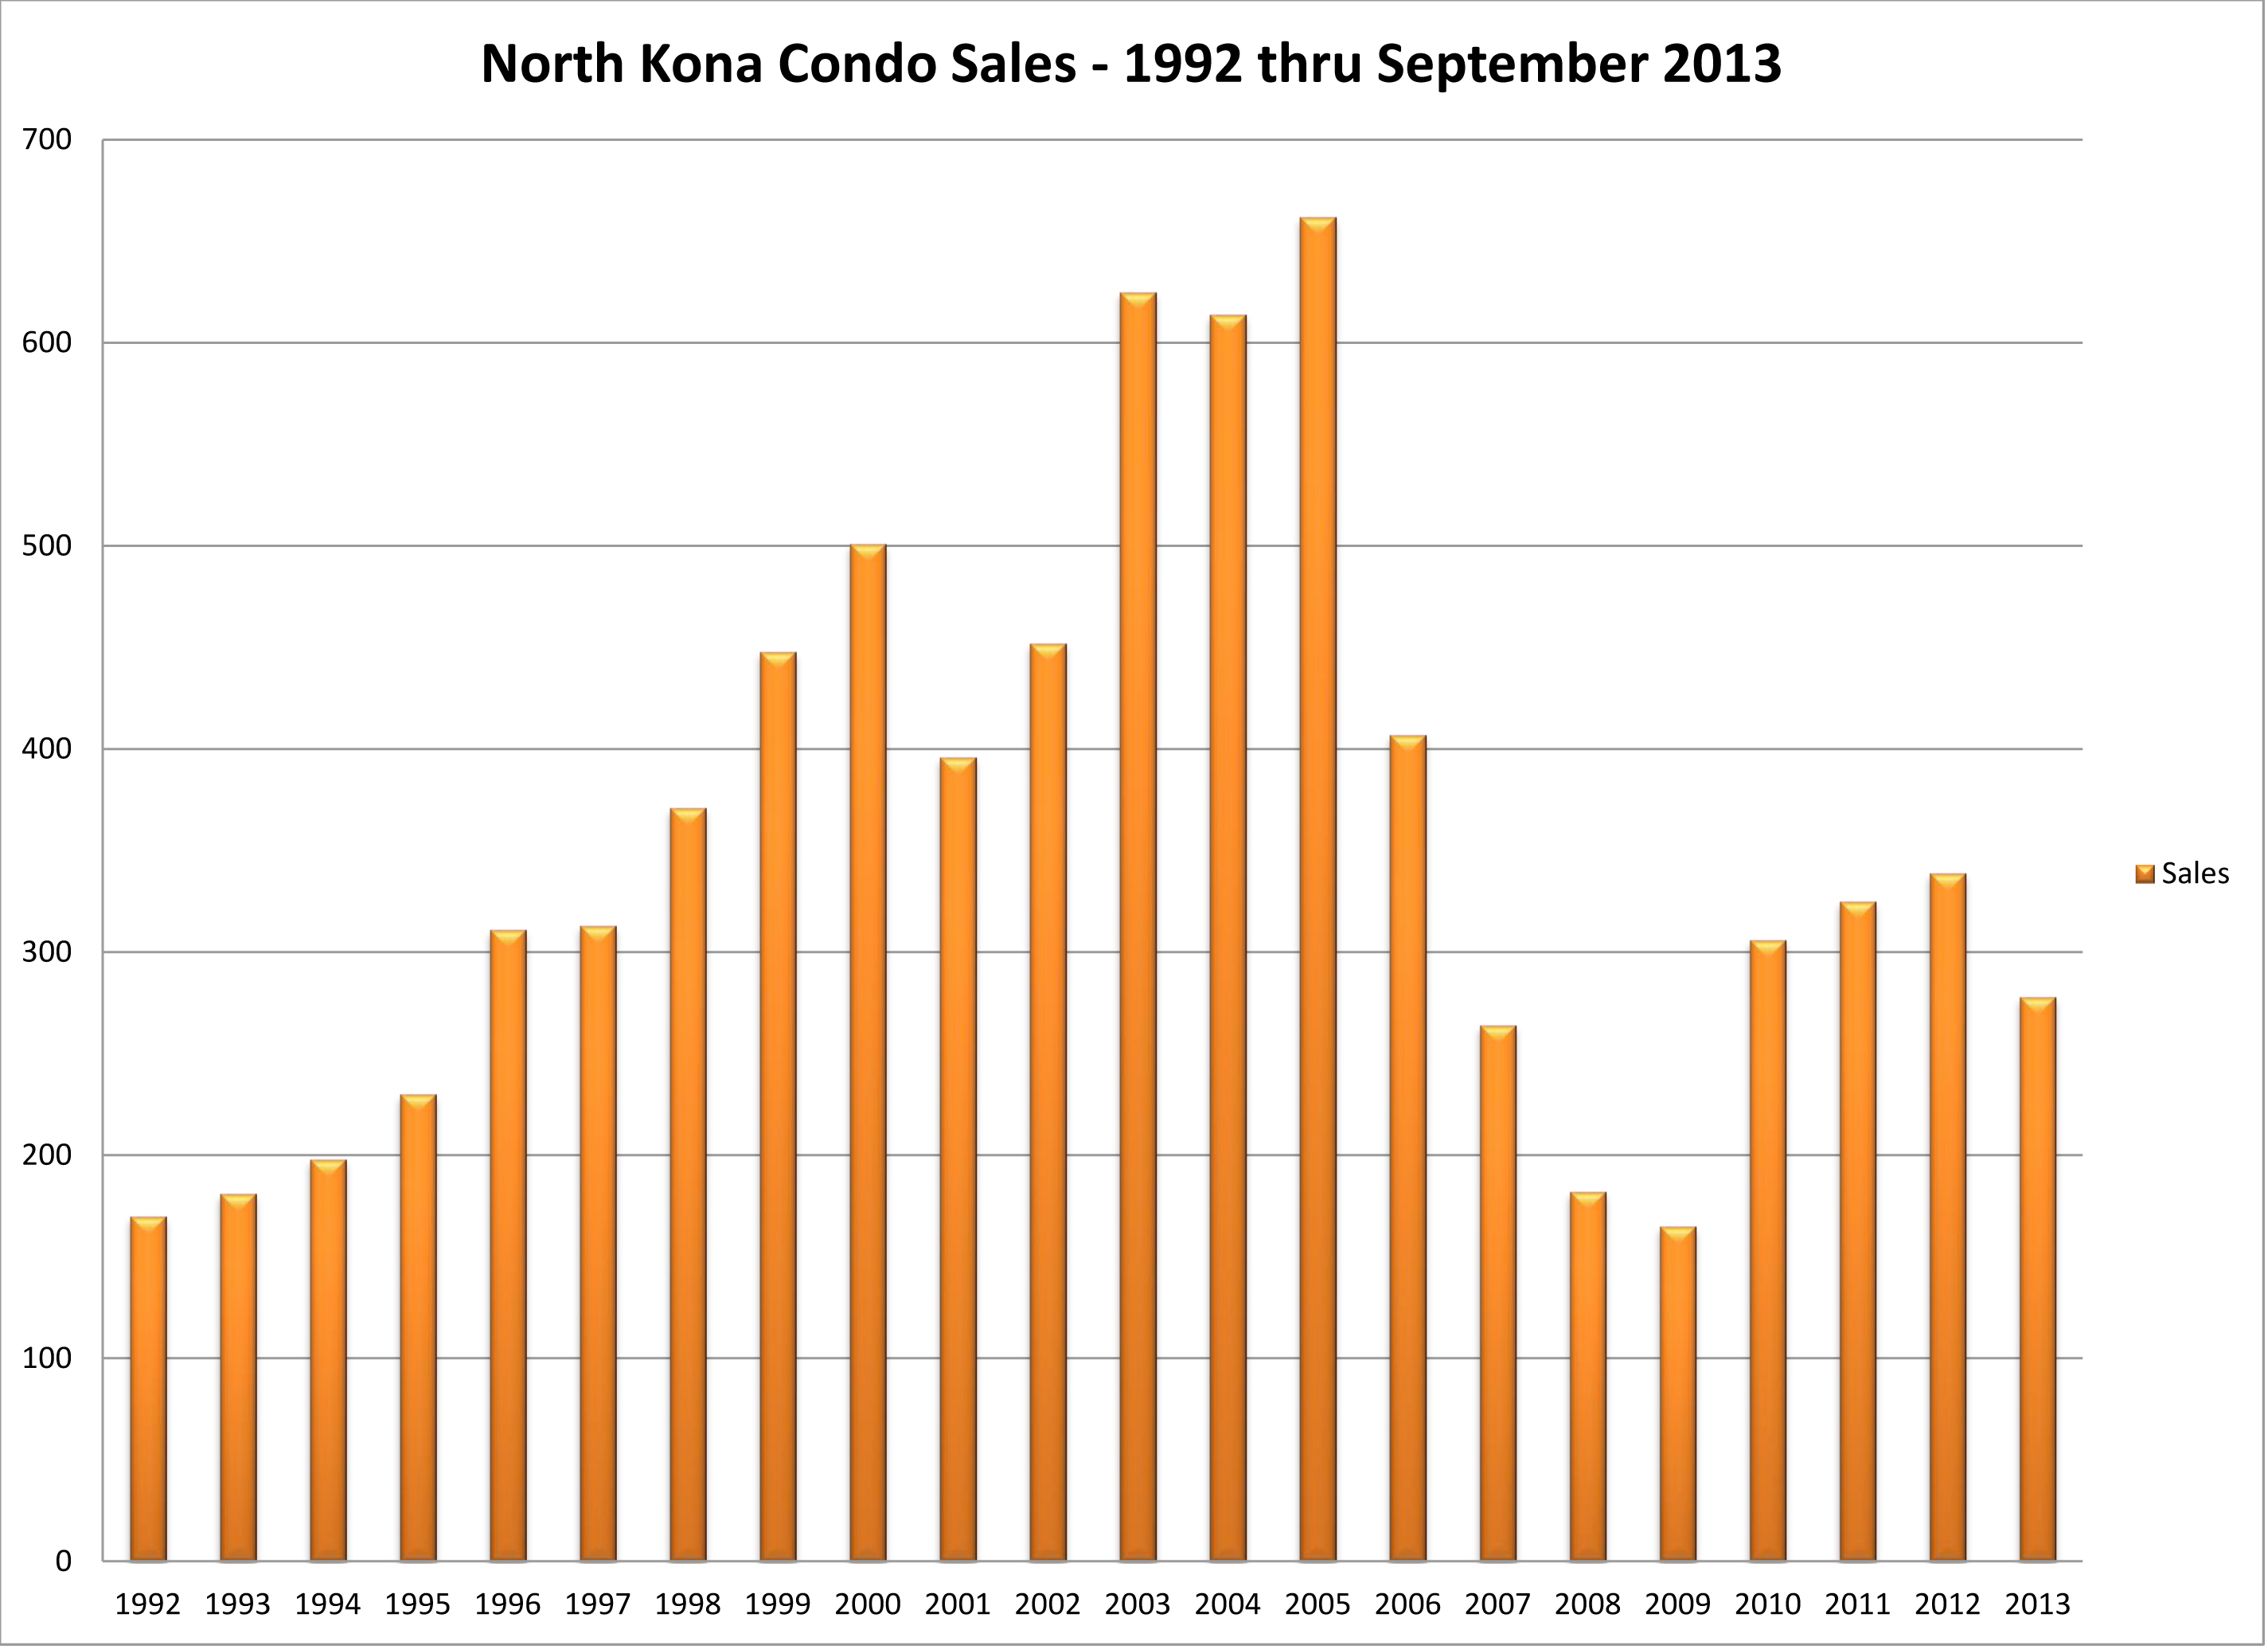 NK condo Sales 92 thru 0913 by Y